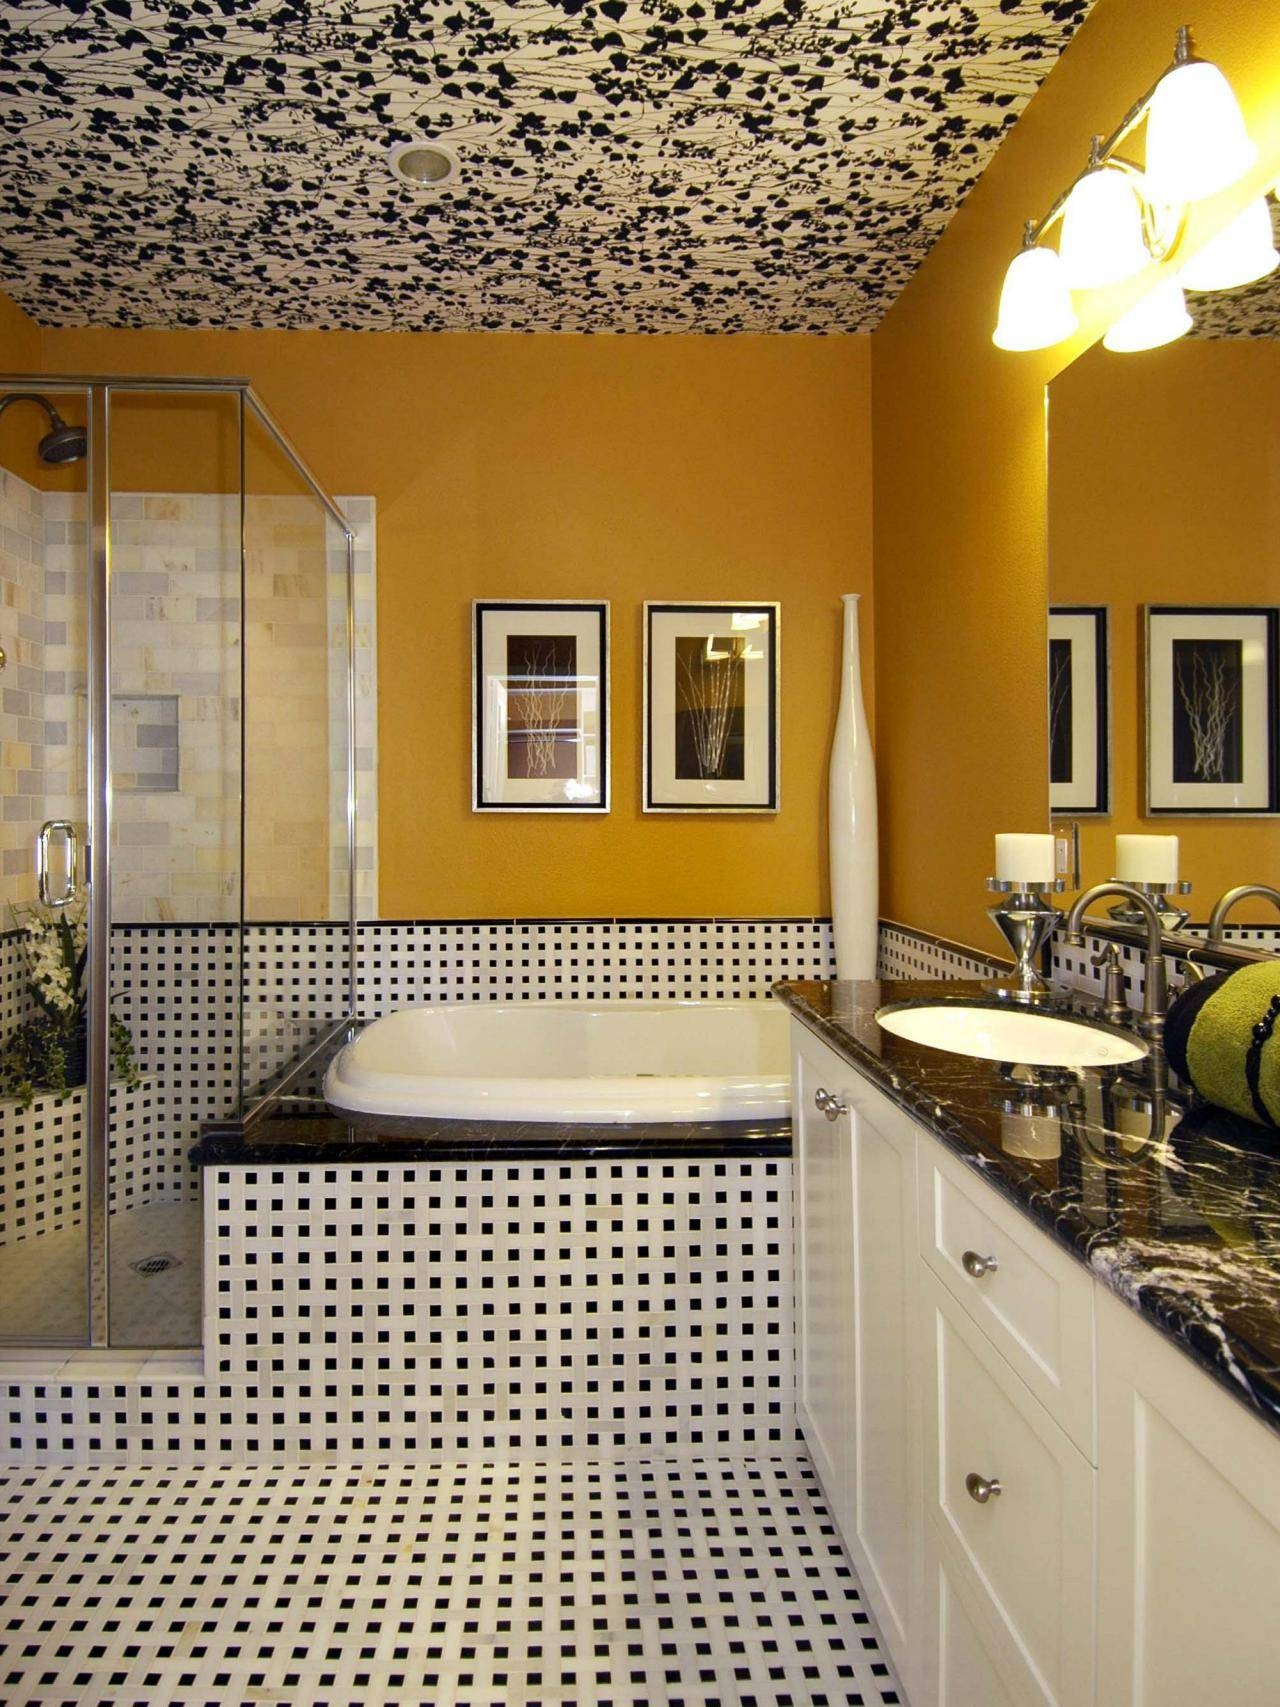 Ceiling Mirrors For Bedrooms: Pictures, Options, Tips & Ideas   Hgtv With Ceiling Mirrors (View 10 of 25)